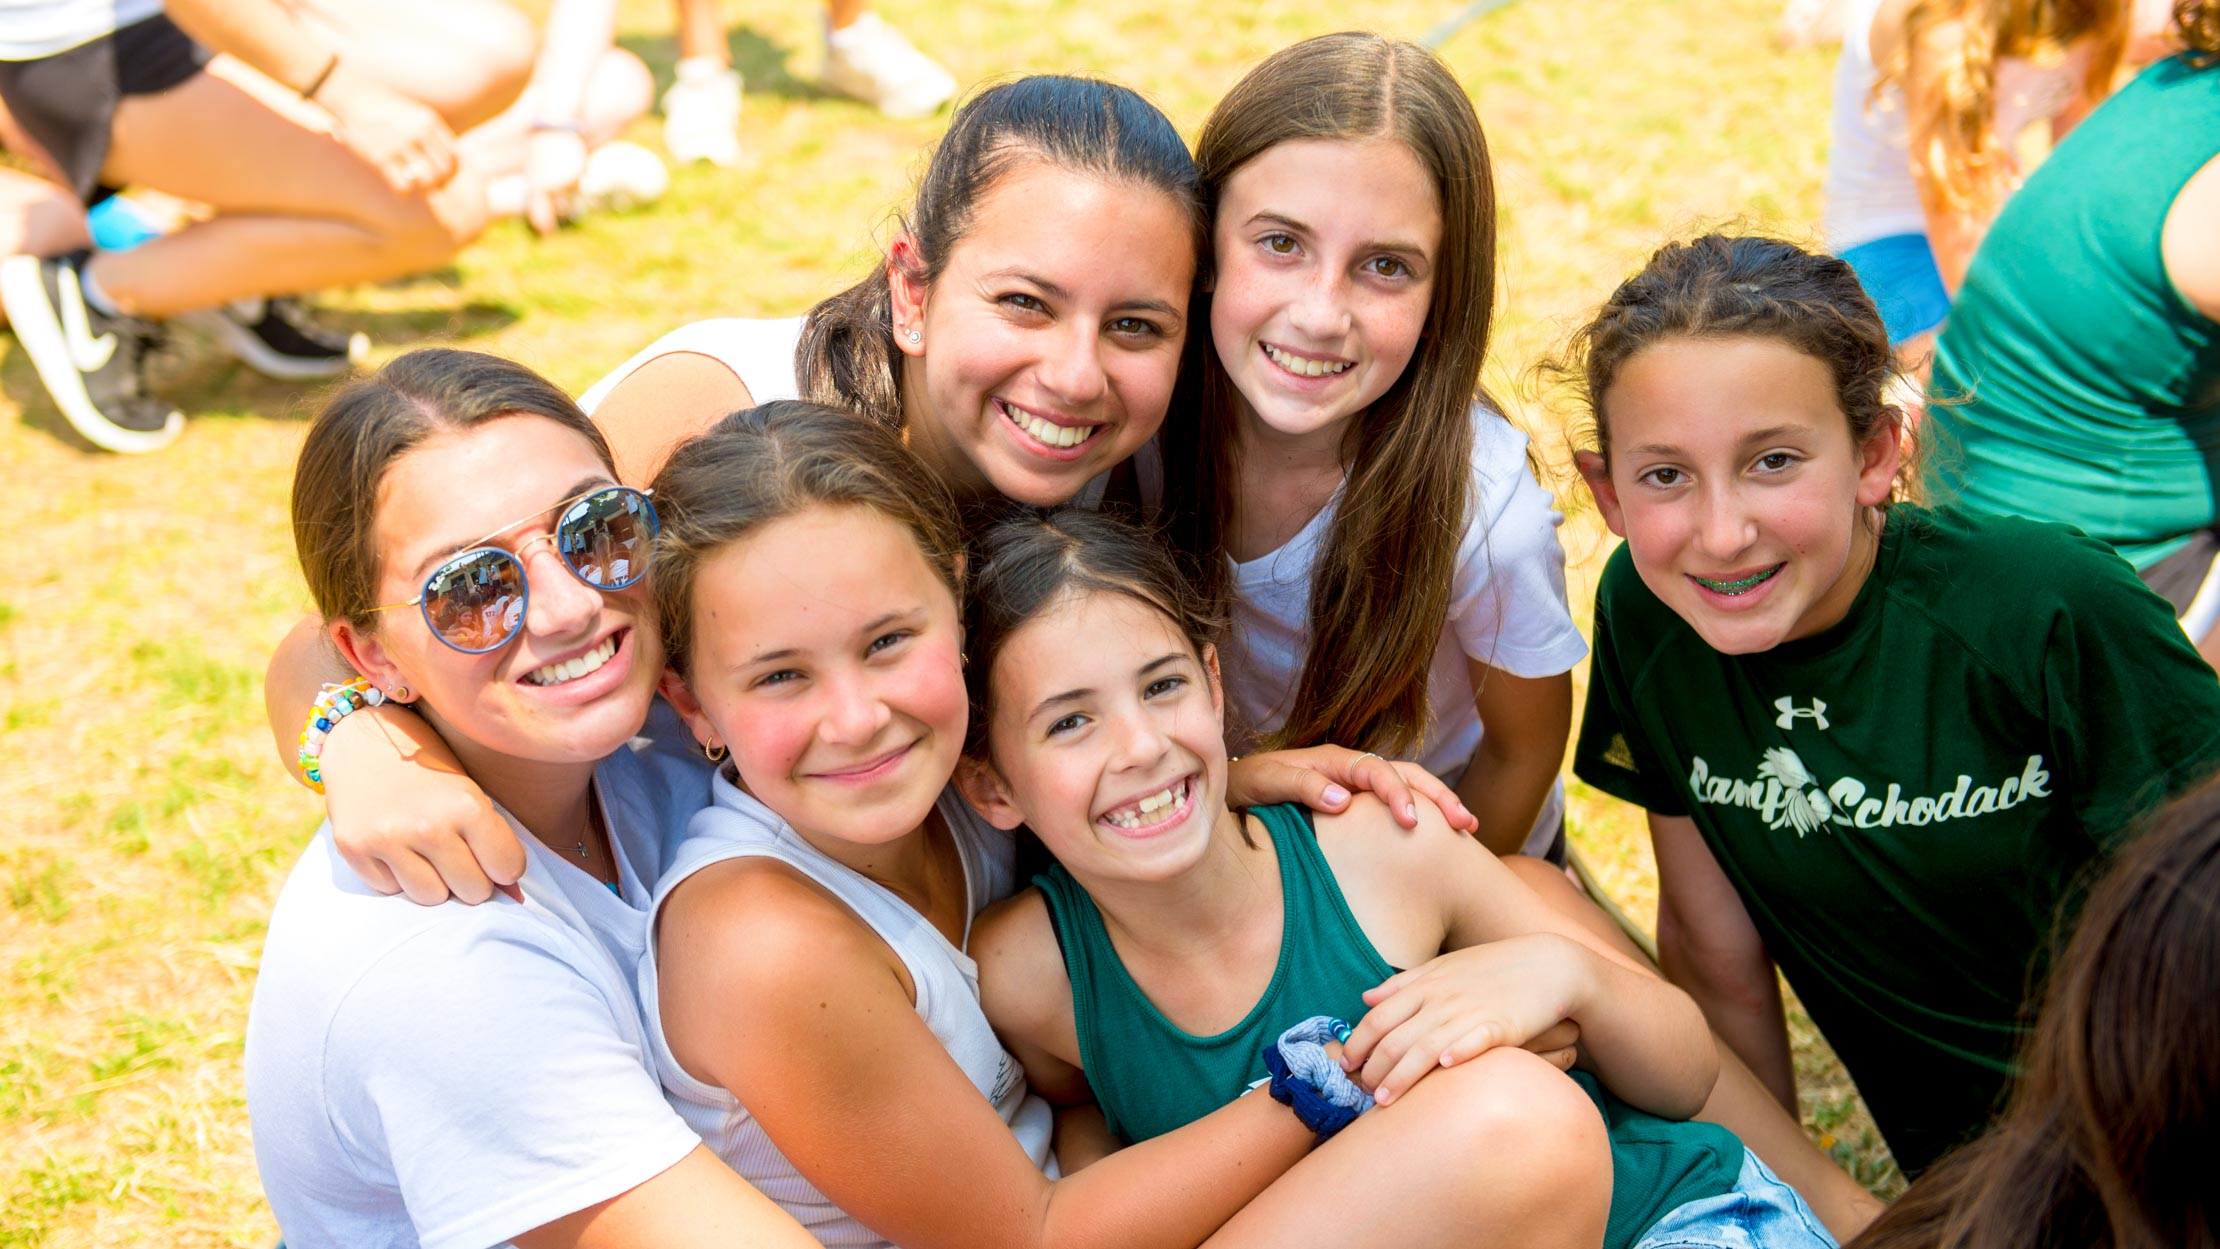 Campers and counselor group hug at summer camp